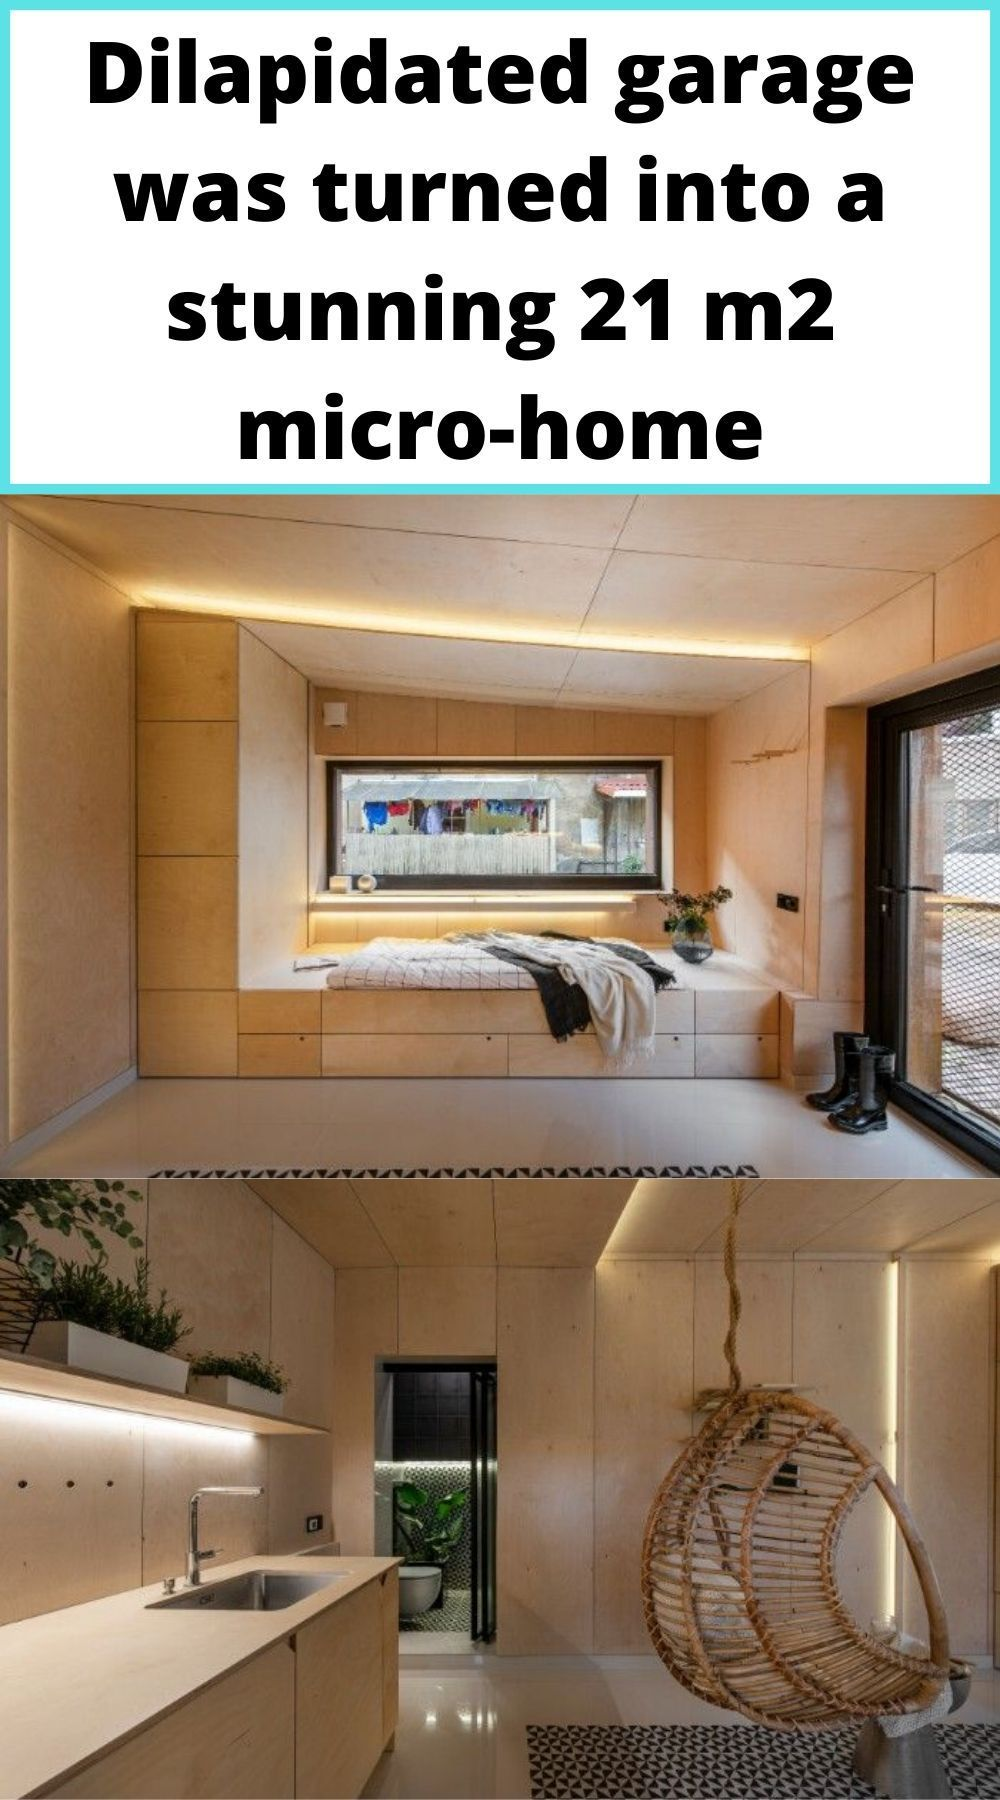 Dilapidated Garage Was Turned Into A Stunning 21 M2 Micro Home In 2020 Micro House Tiny House Inspiration Homeless Housing